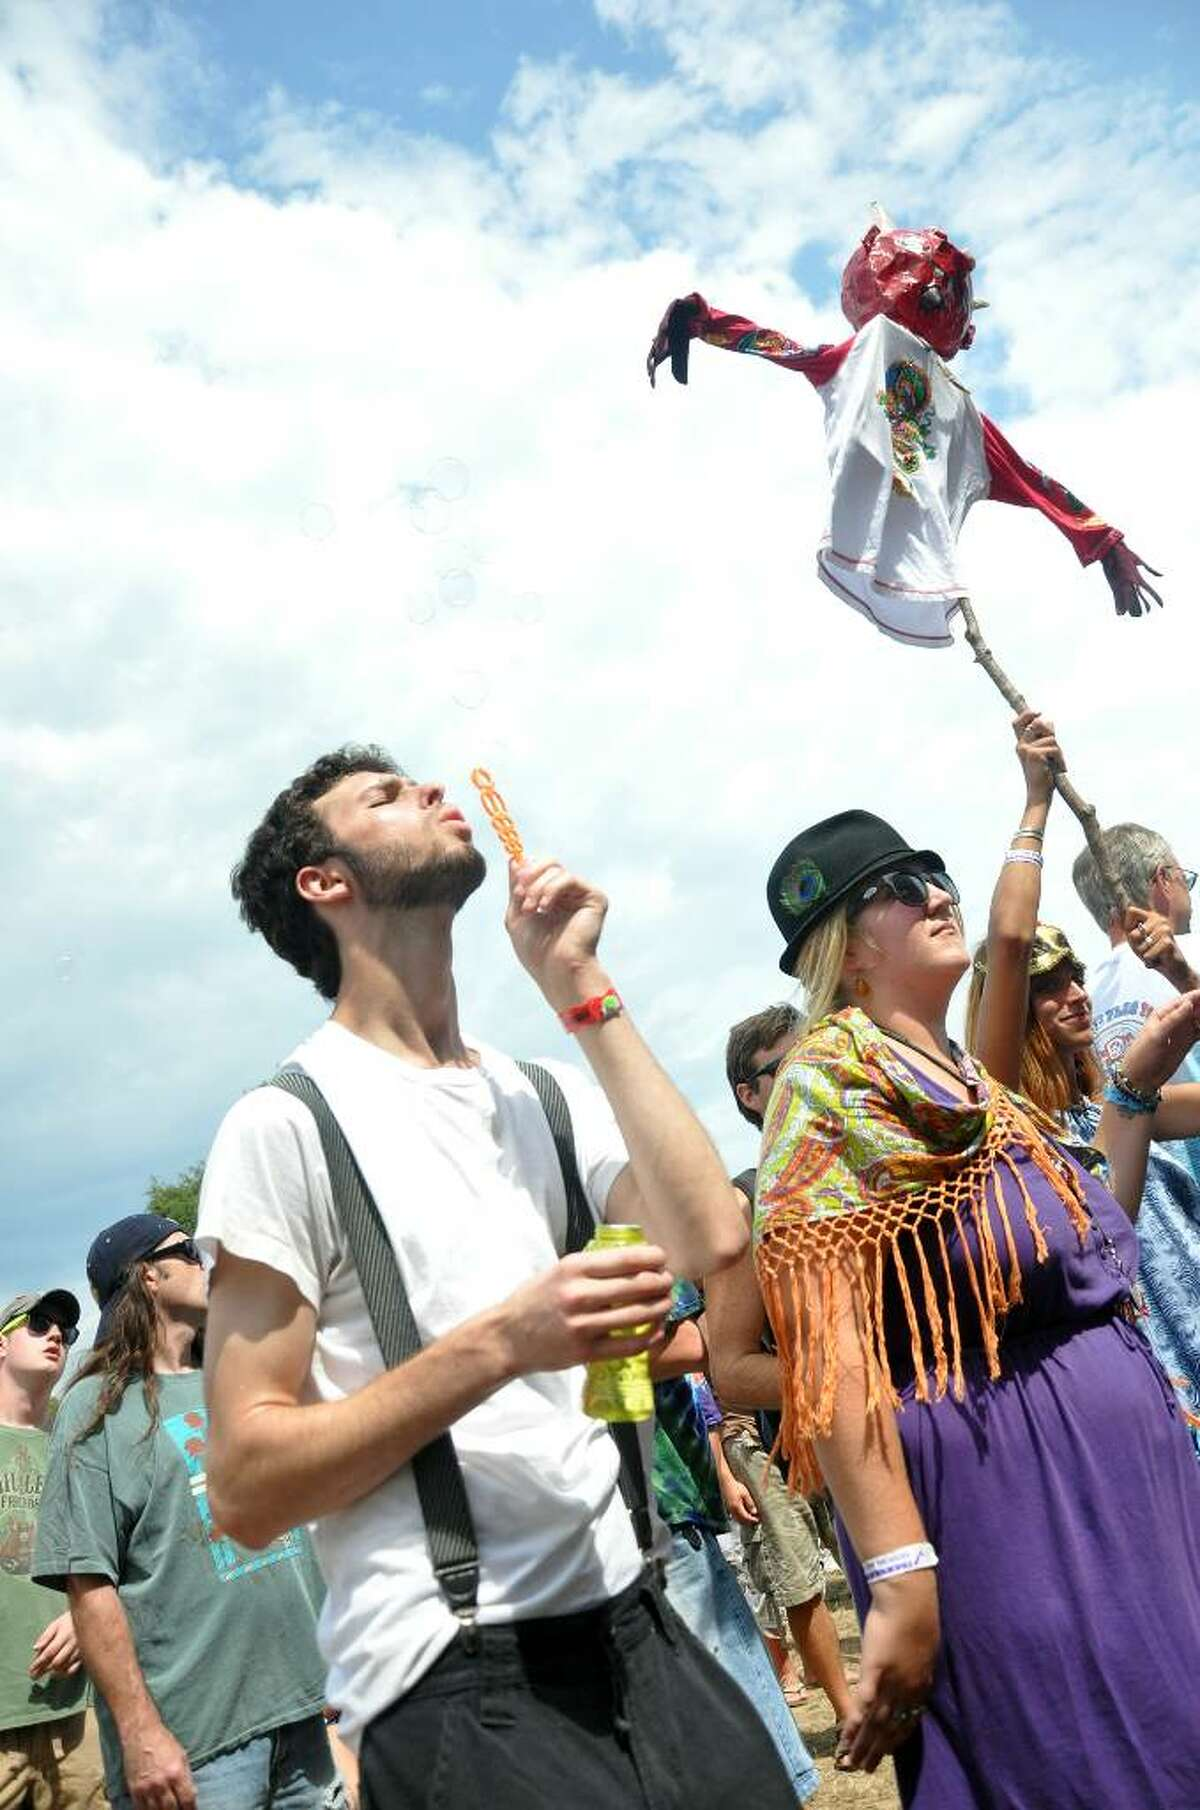 Sam Ackerman, of Queens, NY and Juliet Ariosa, of Baltimore, MD groove to the vibes of Jackie Greene at the Vibes Main Stage during the 15th annual Gathering of the Vibes at Seaside Park in Bridgeport on Friday, July 30, 2010.